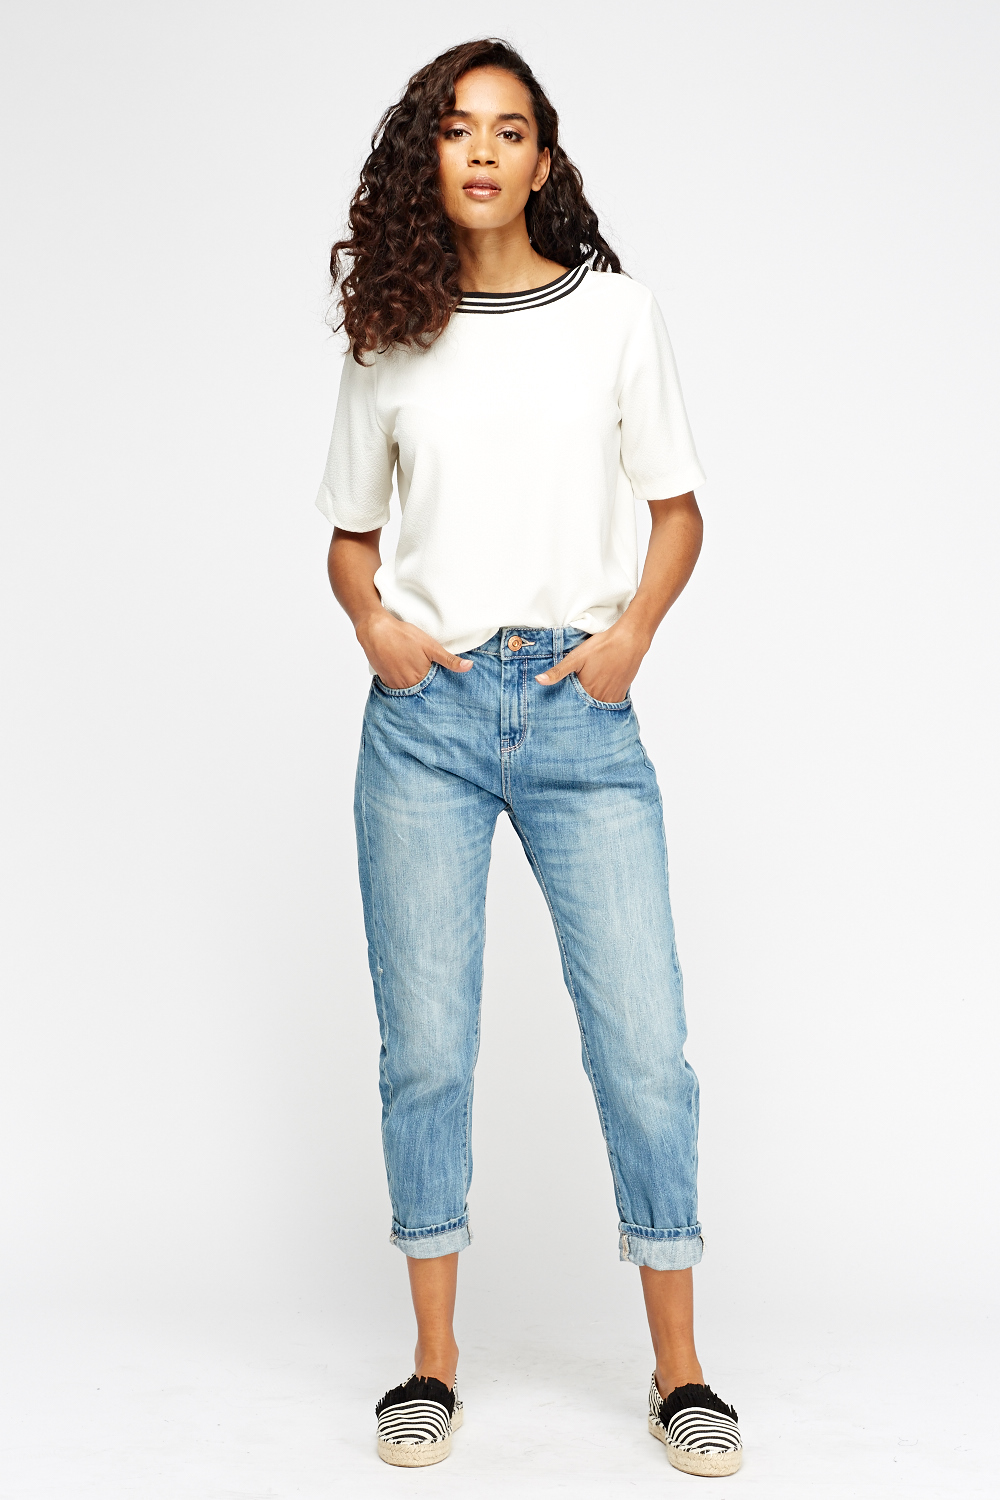 boyfriend jeans for women - photo #45